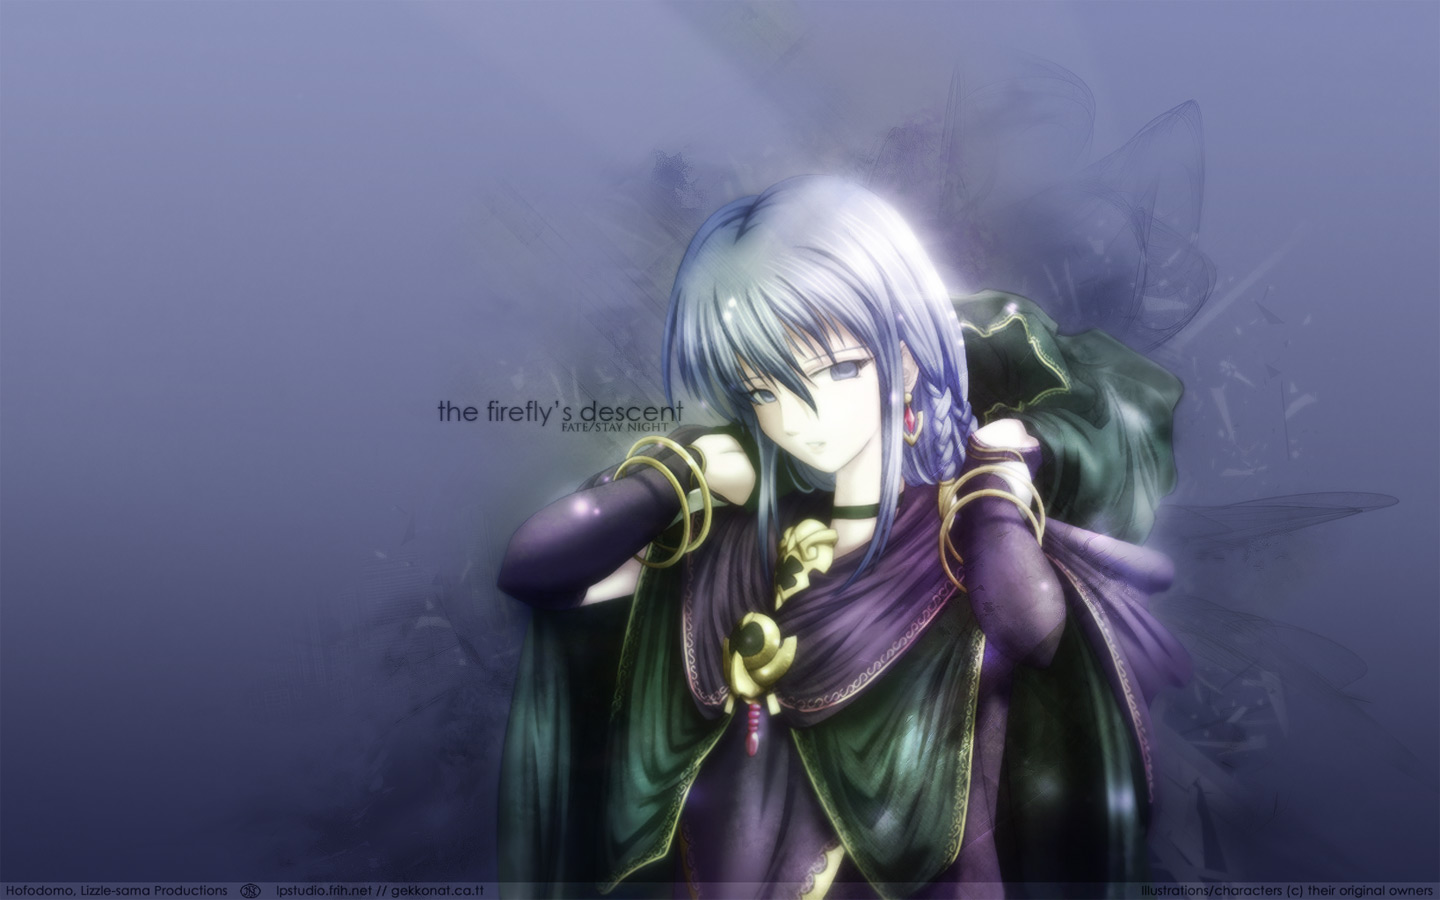 fatestay night konachannet   Konachancom Anime Wallpapers 1440x900